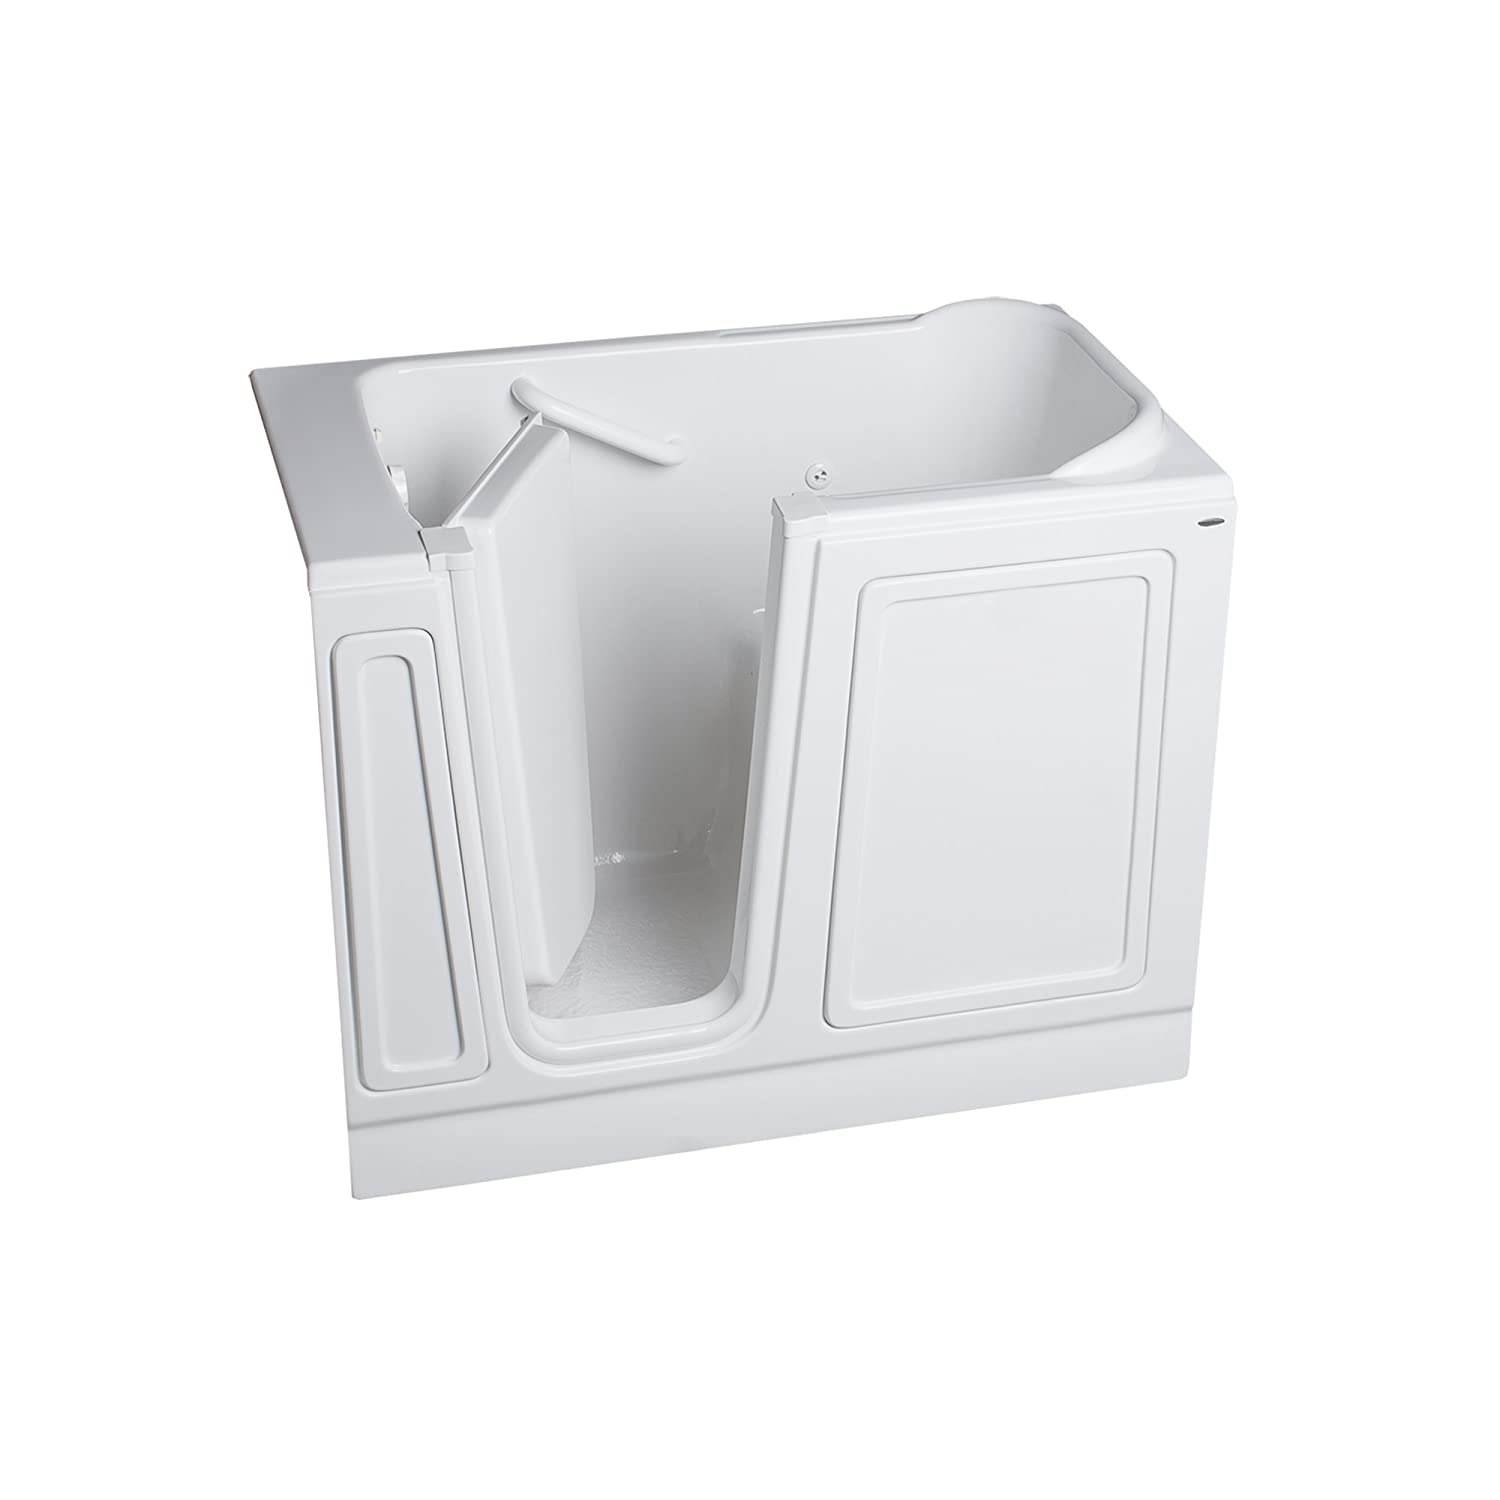 5.American Standard Whirlpool Gelcoat Walk-In Bath with Quick Drain